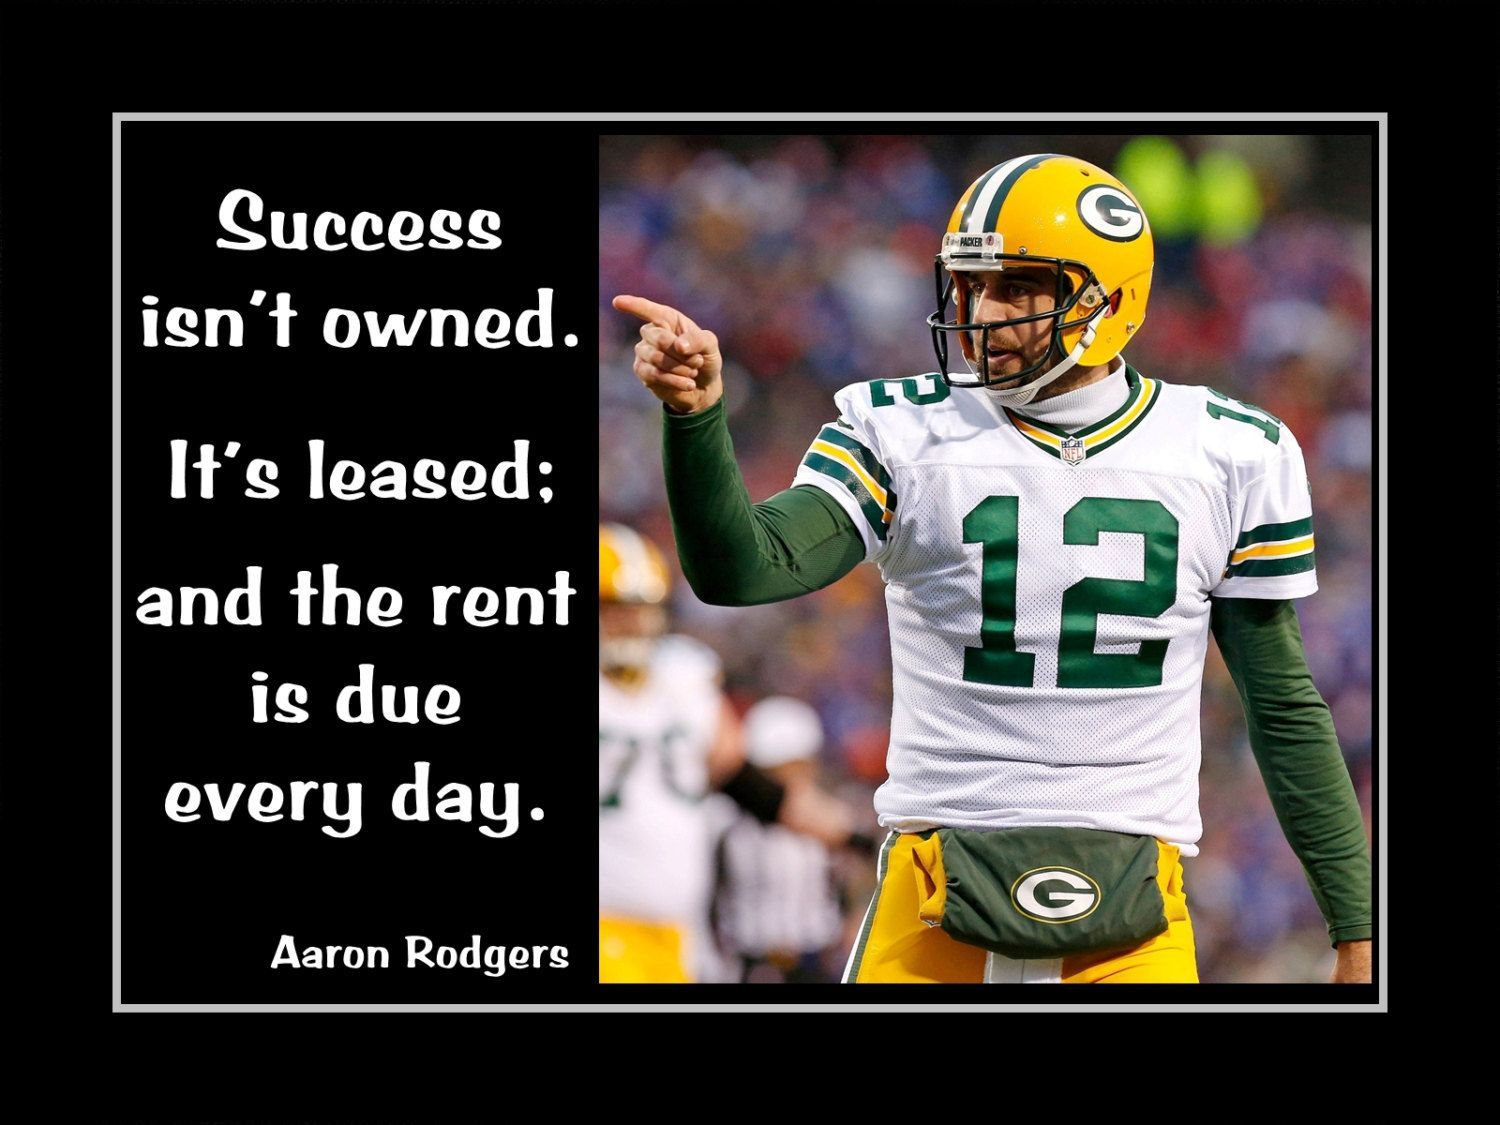 Football Motivation Poster Aaron Rodgers Green Bay Packers Photo Quote Wall Art Print 20 X30 Success I In 2020 Football Motivation Green Bay Packers Rodgers Green Bay